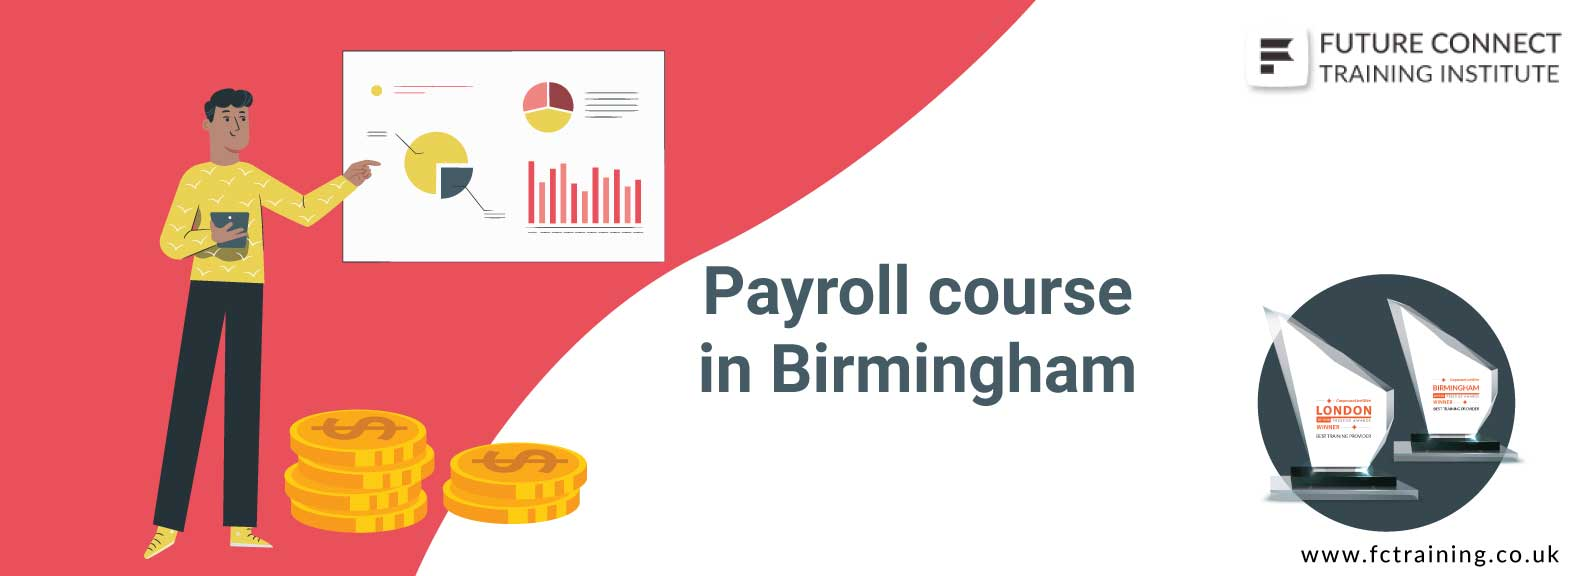 Payroll course in Birmingham